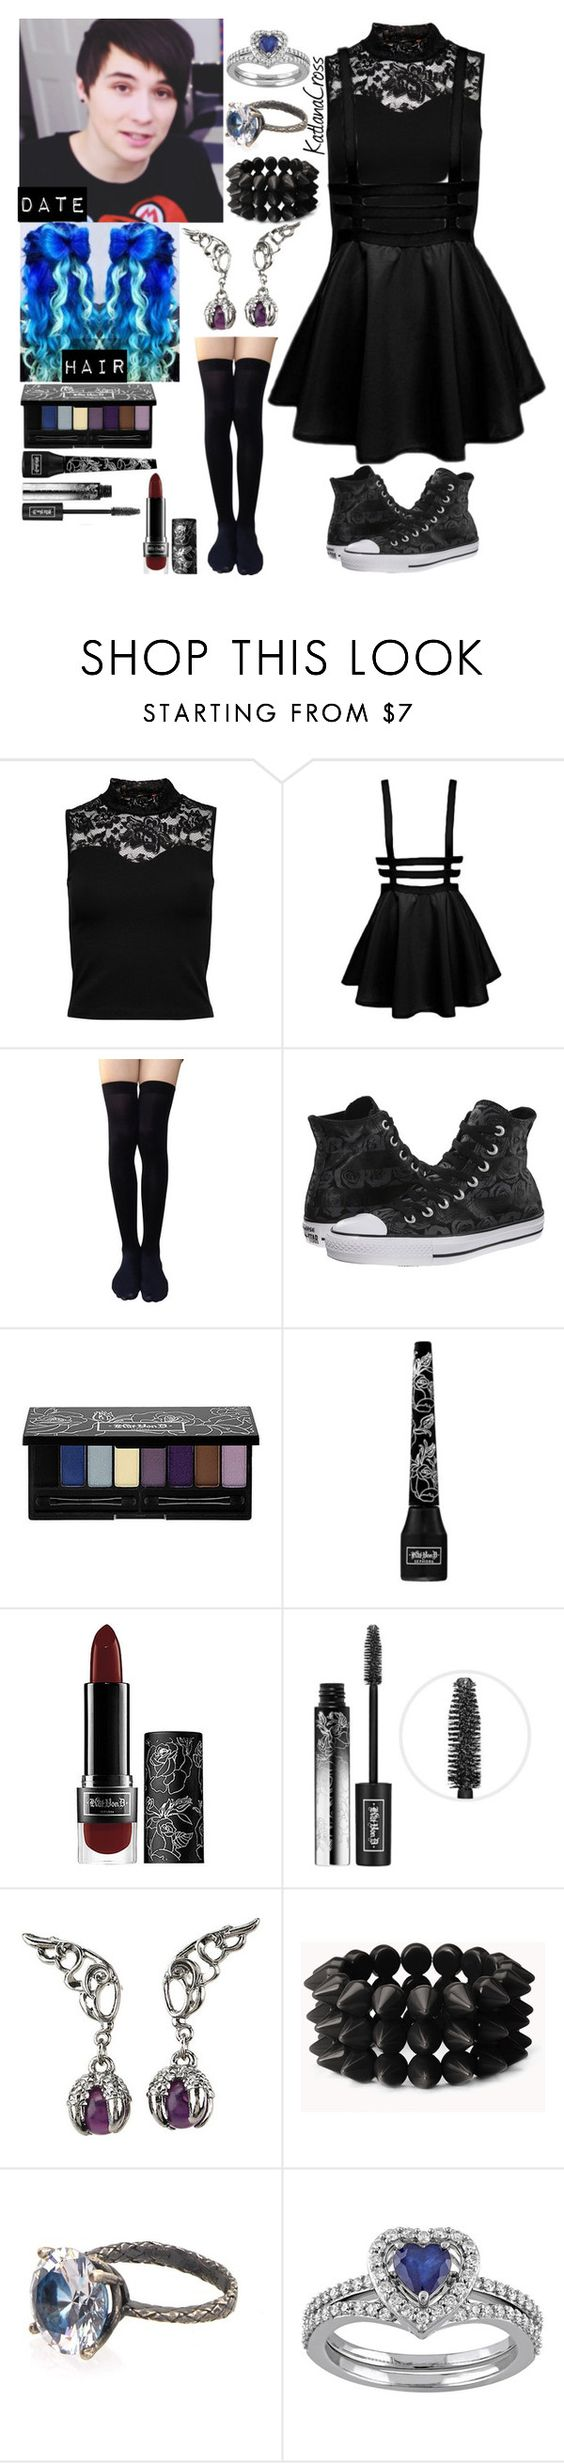 """""""For @potatolover123"""" by katlanacross ❤ liked on Polyvore featuring ONLY, Converse, Kat Von D, Forever 21 and Bottega Veneta"""